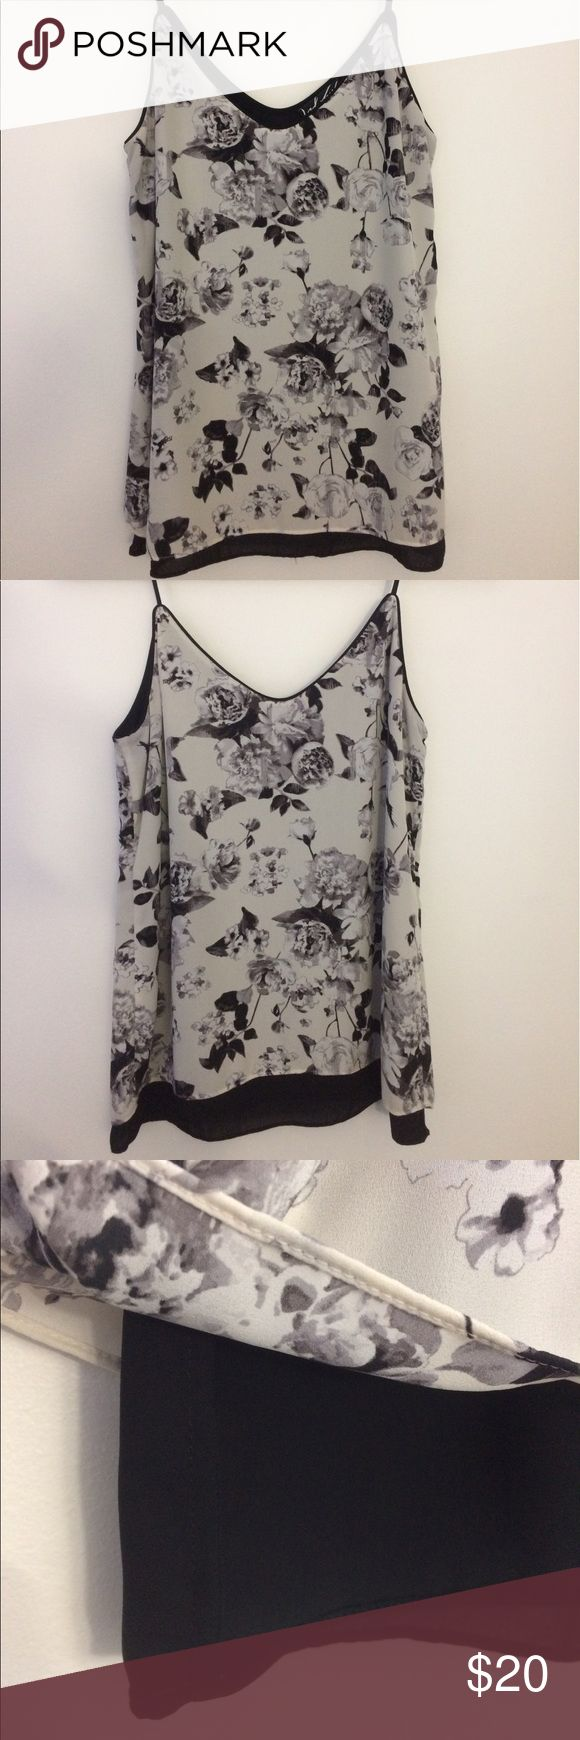 424 FIFTH Floral Double Layer Cami 424 FIFTH by Lord & Taylor neutral floral colored cami. Perfect on it's own or under a jacket. Soft polyester double layer georgette, with tiny piping detail and skinny straps. Mint condition. Machine washable! Lord & Taylor Tops Camisoles